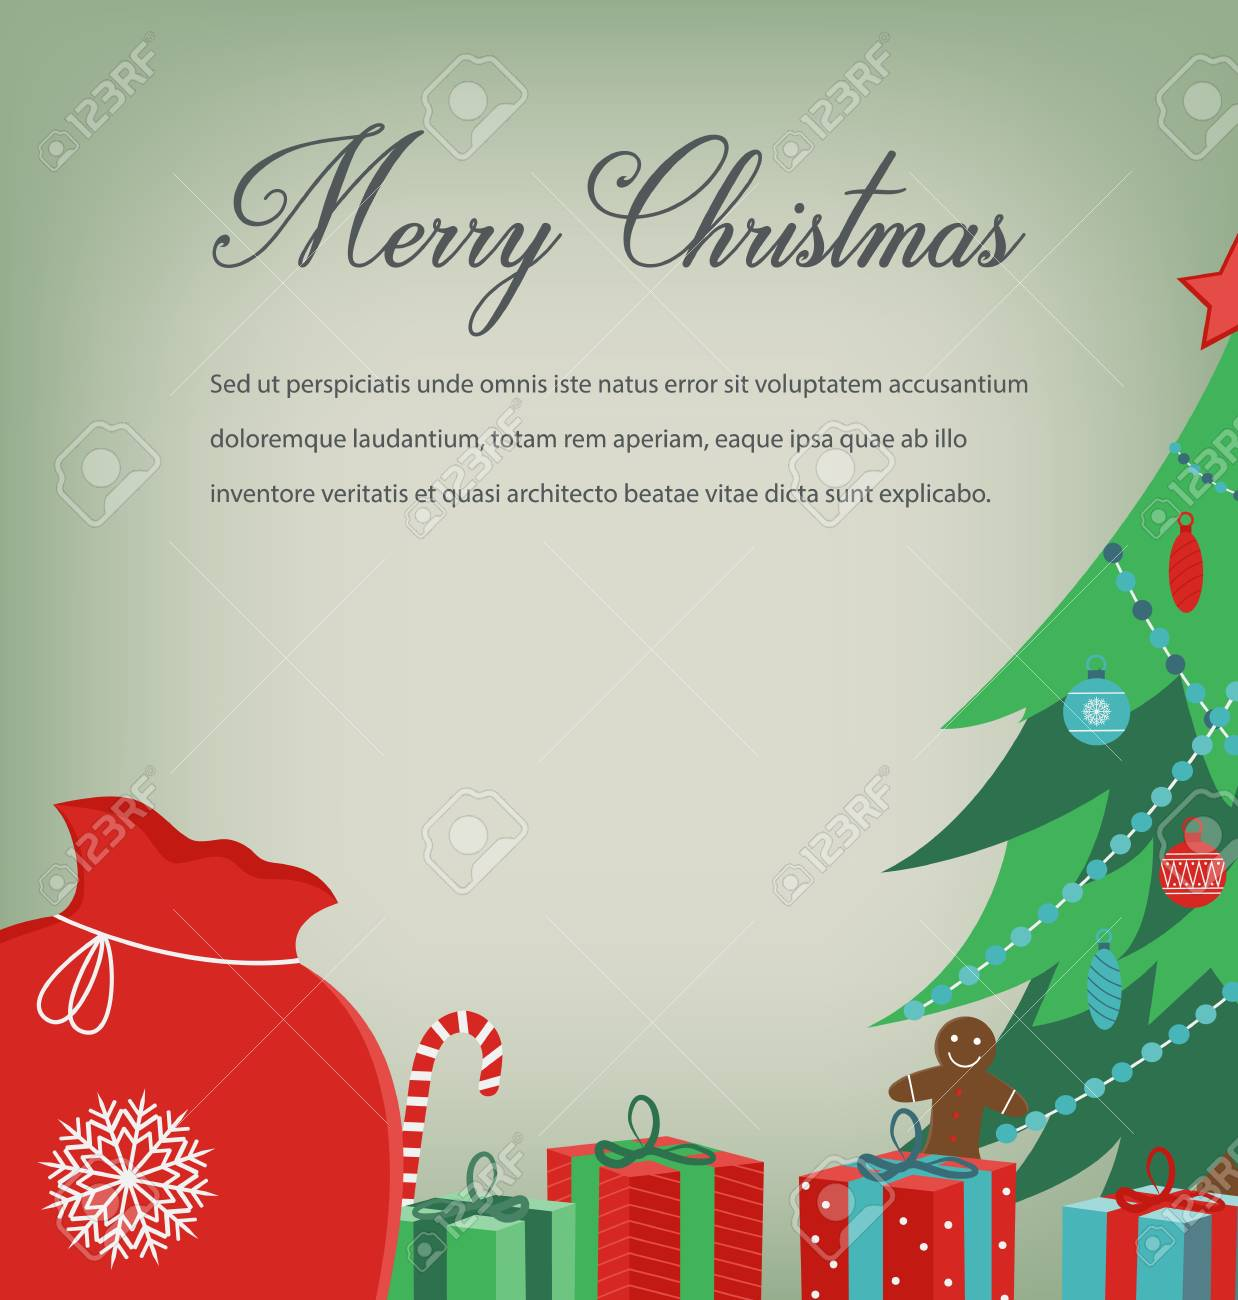 Christmas greeting card with Merry Christmas wishes. Vector illustration